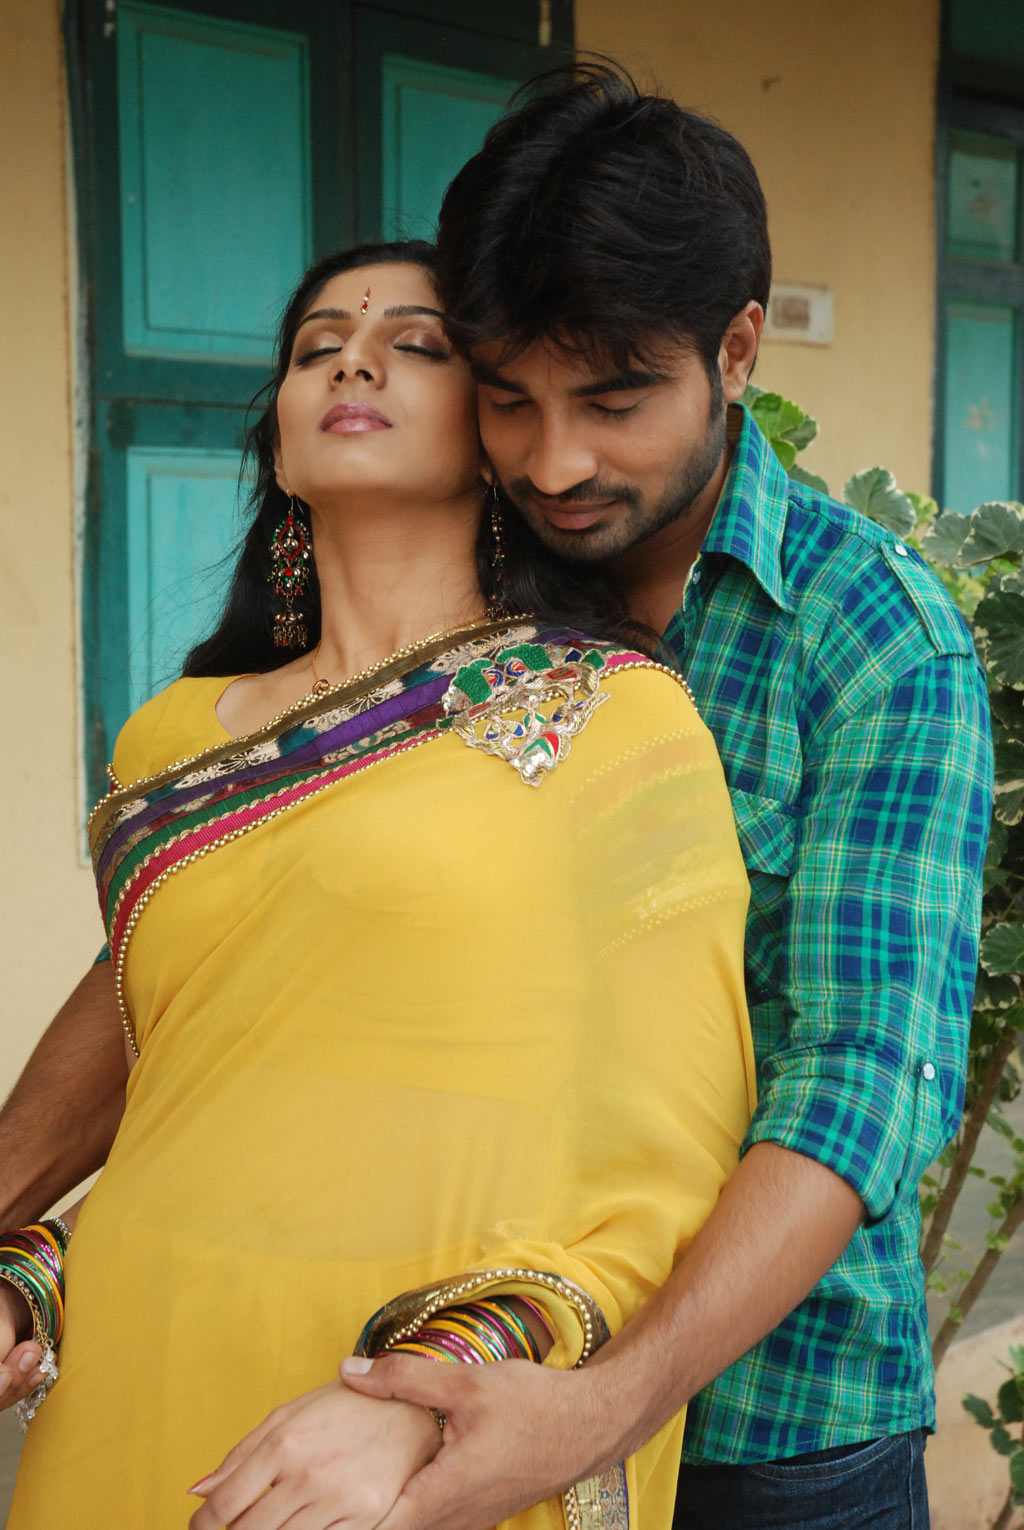 kai tamil movie new romantic pictures girls games